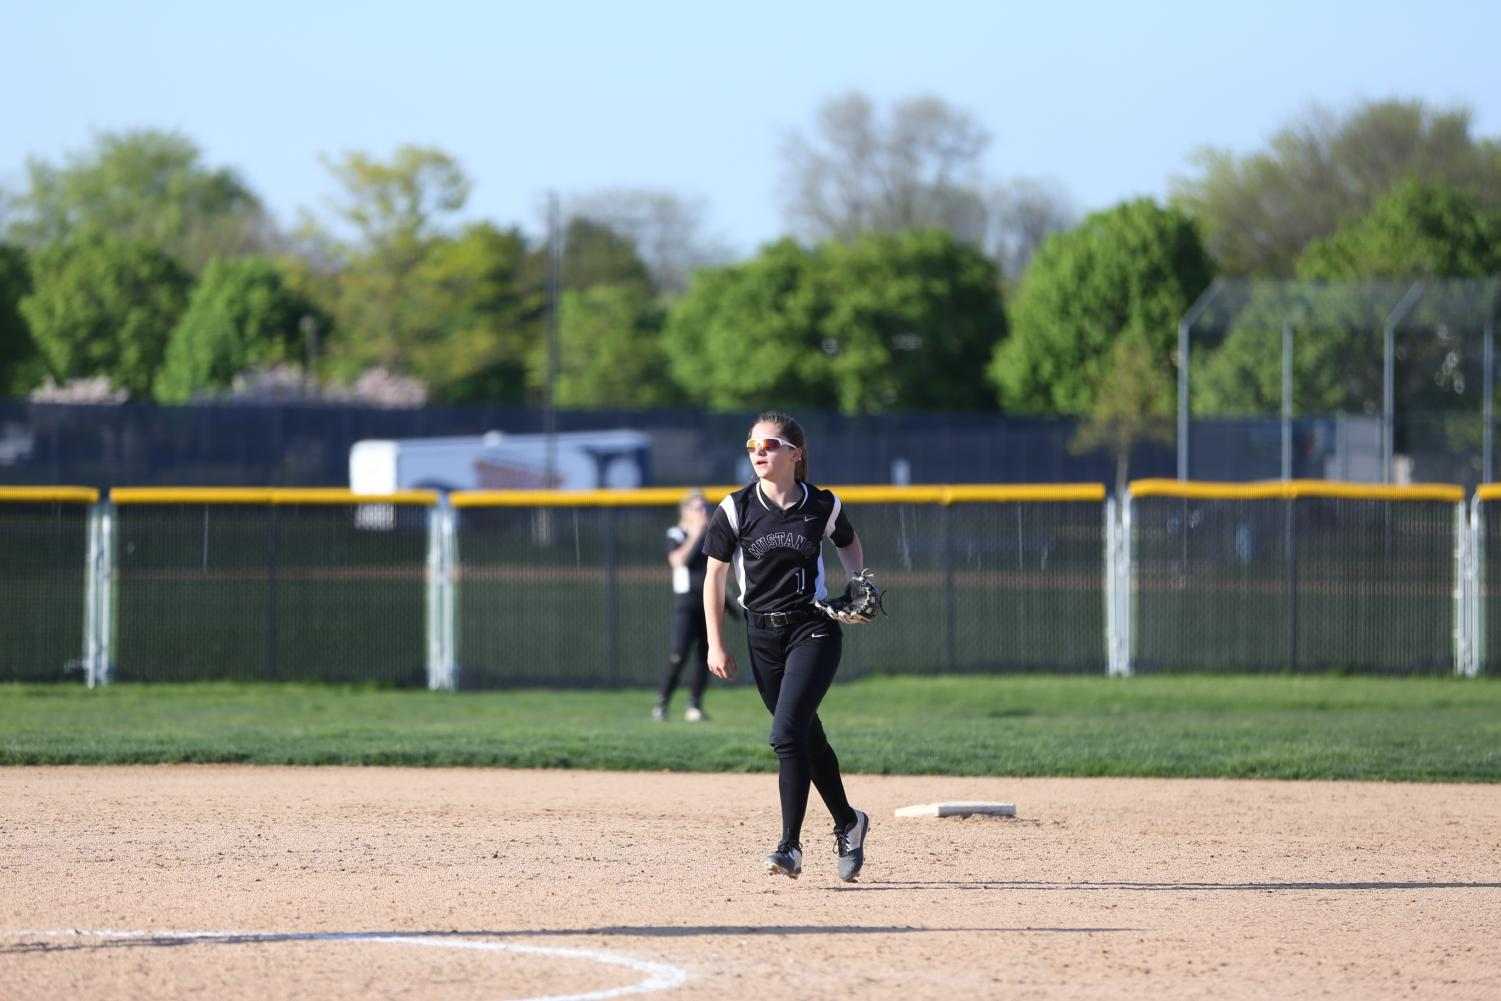 Shortstop+and+second+baseman%2C+Nicole+Orloff+passing+the+ball+to+the+pitcher.